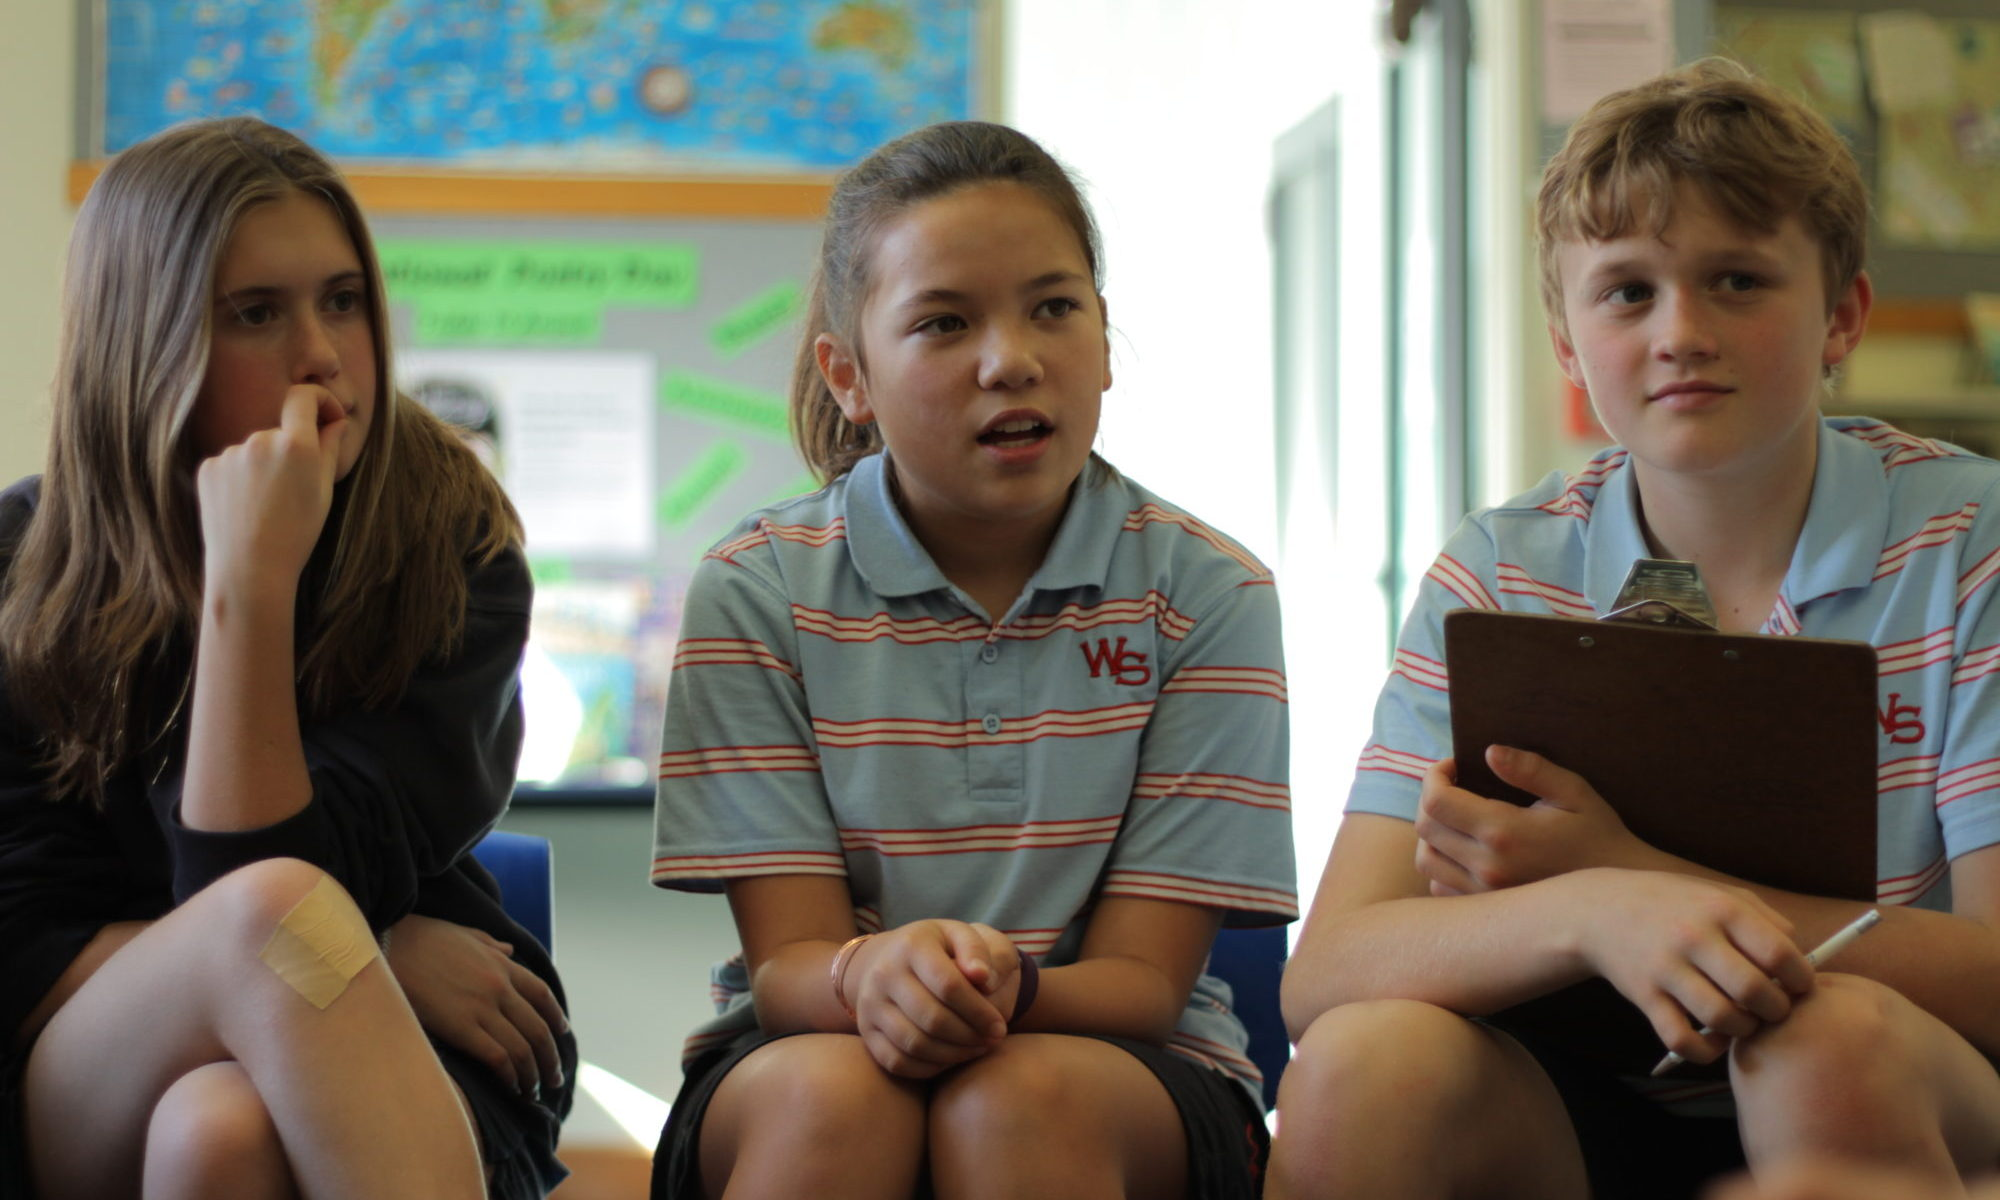 Providing leadership opportunities for students at Wadestown School.